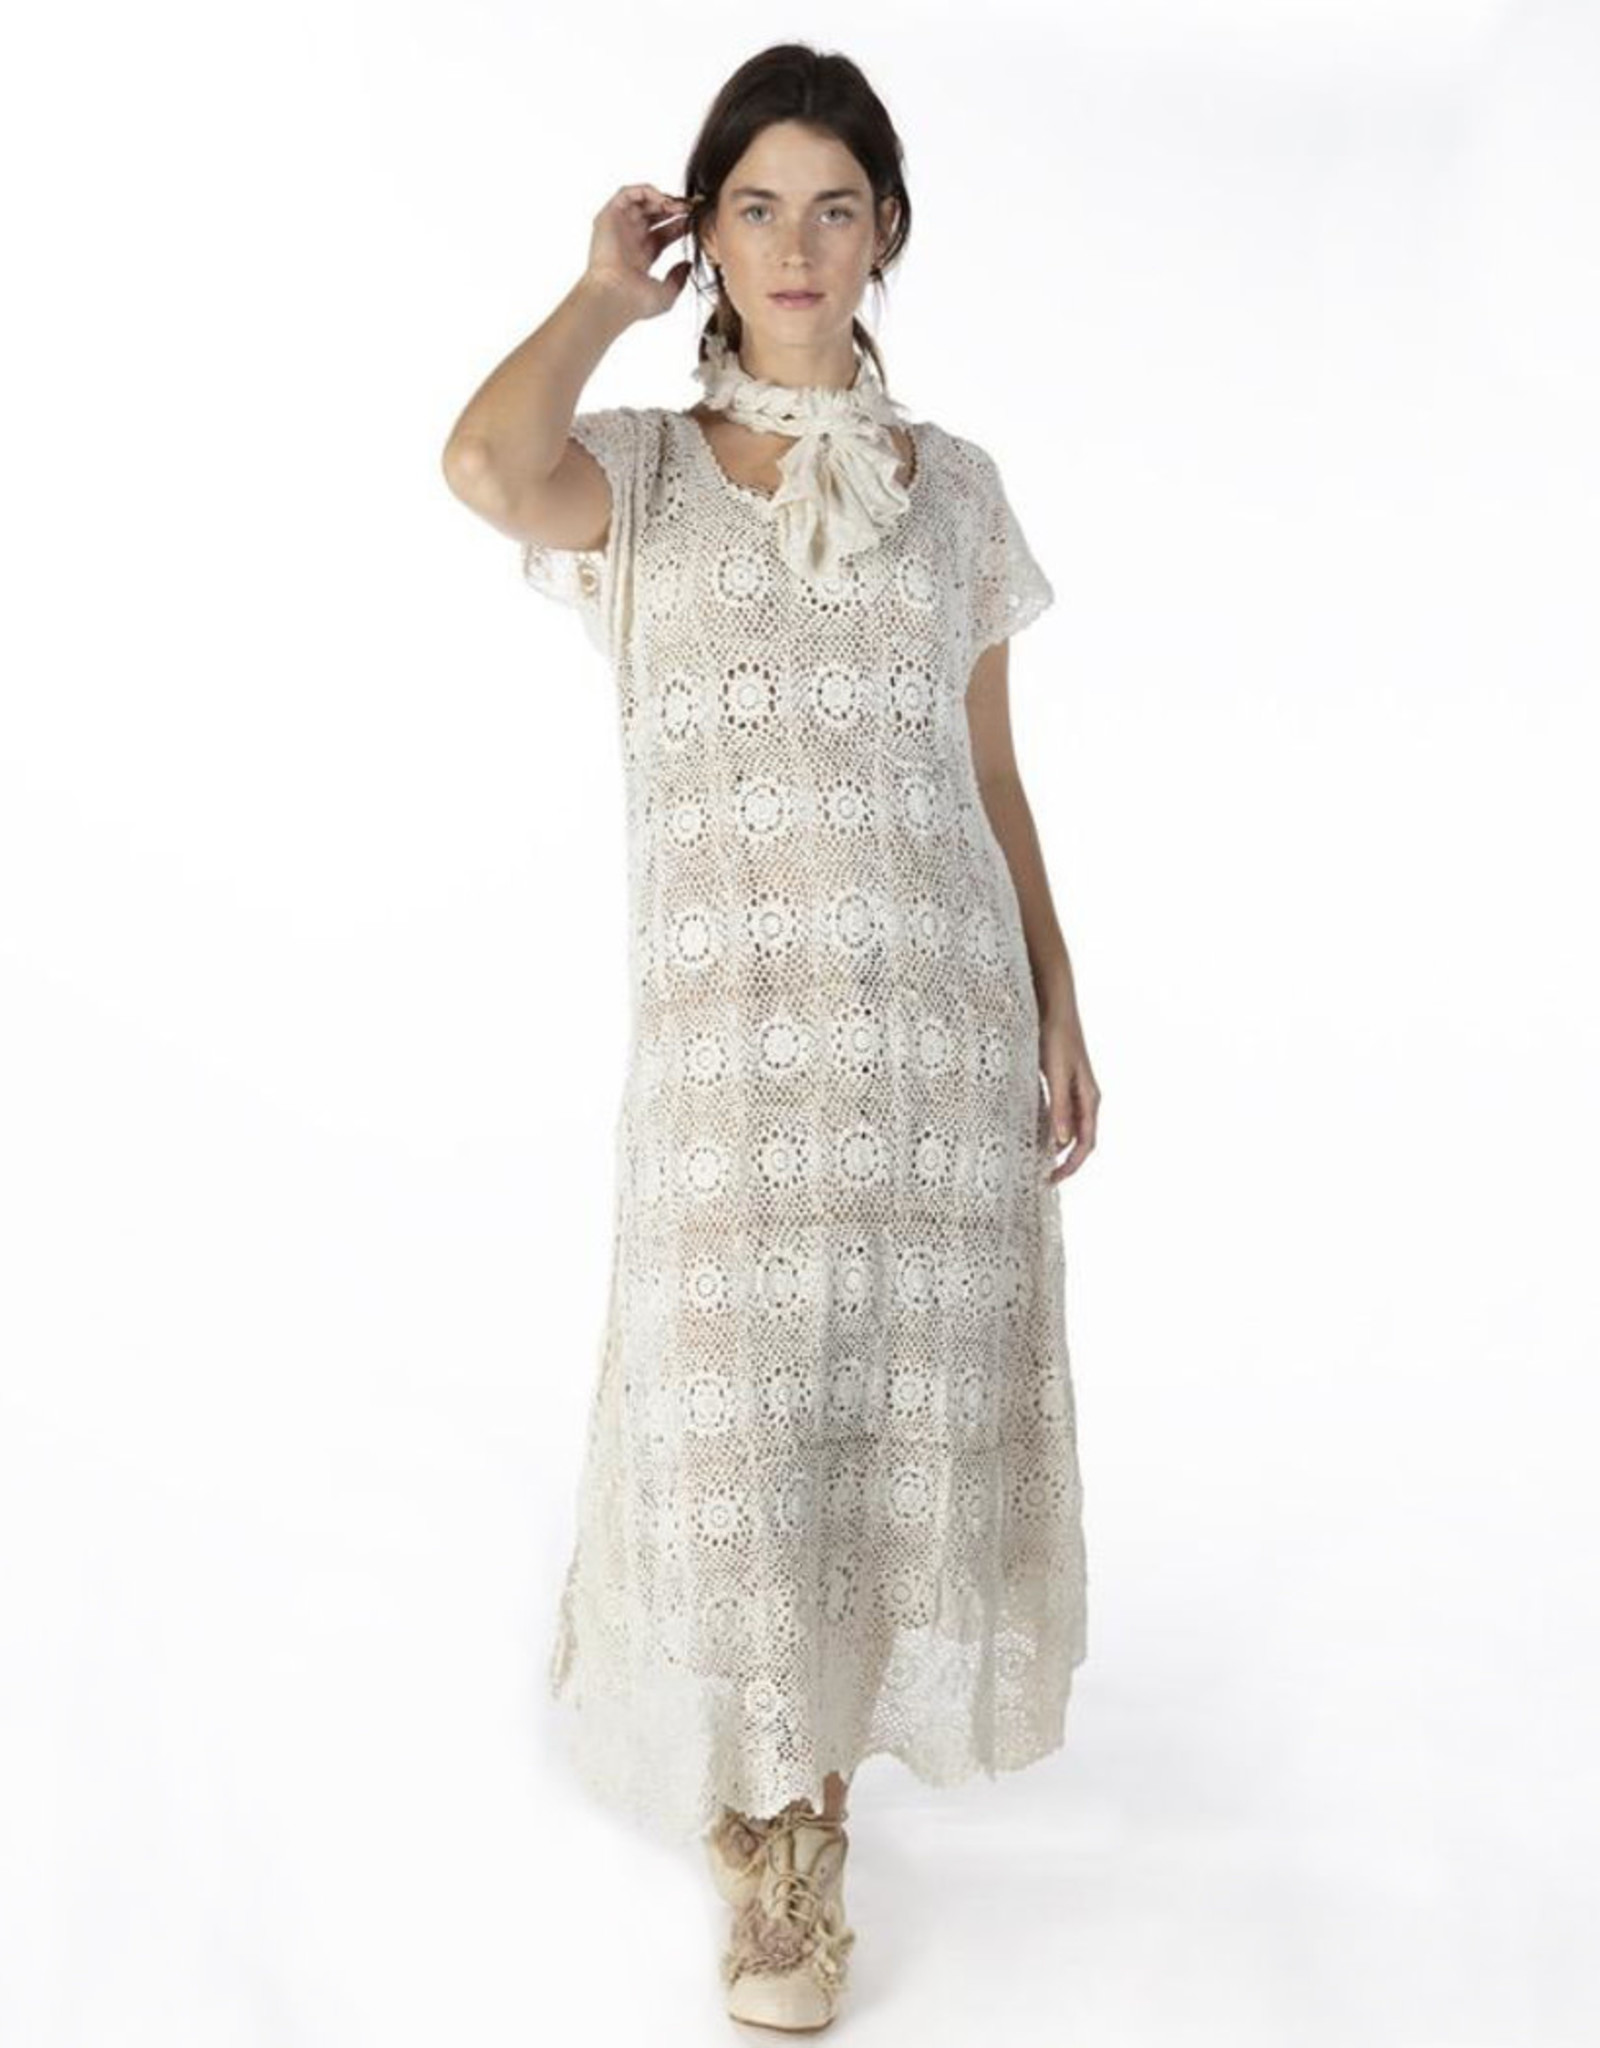 Magnolia Pearl Dress 668 (Moonlight, O/S)